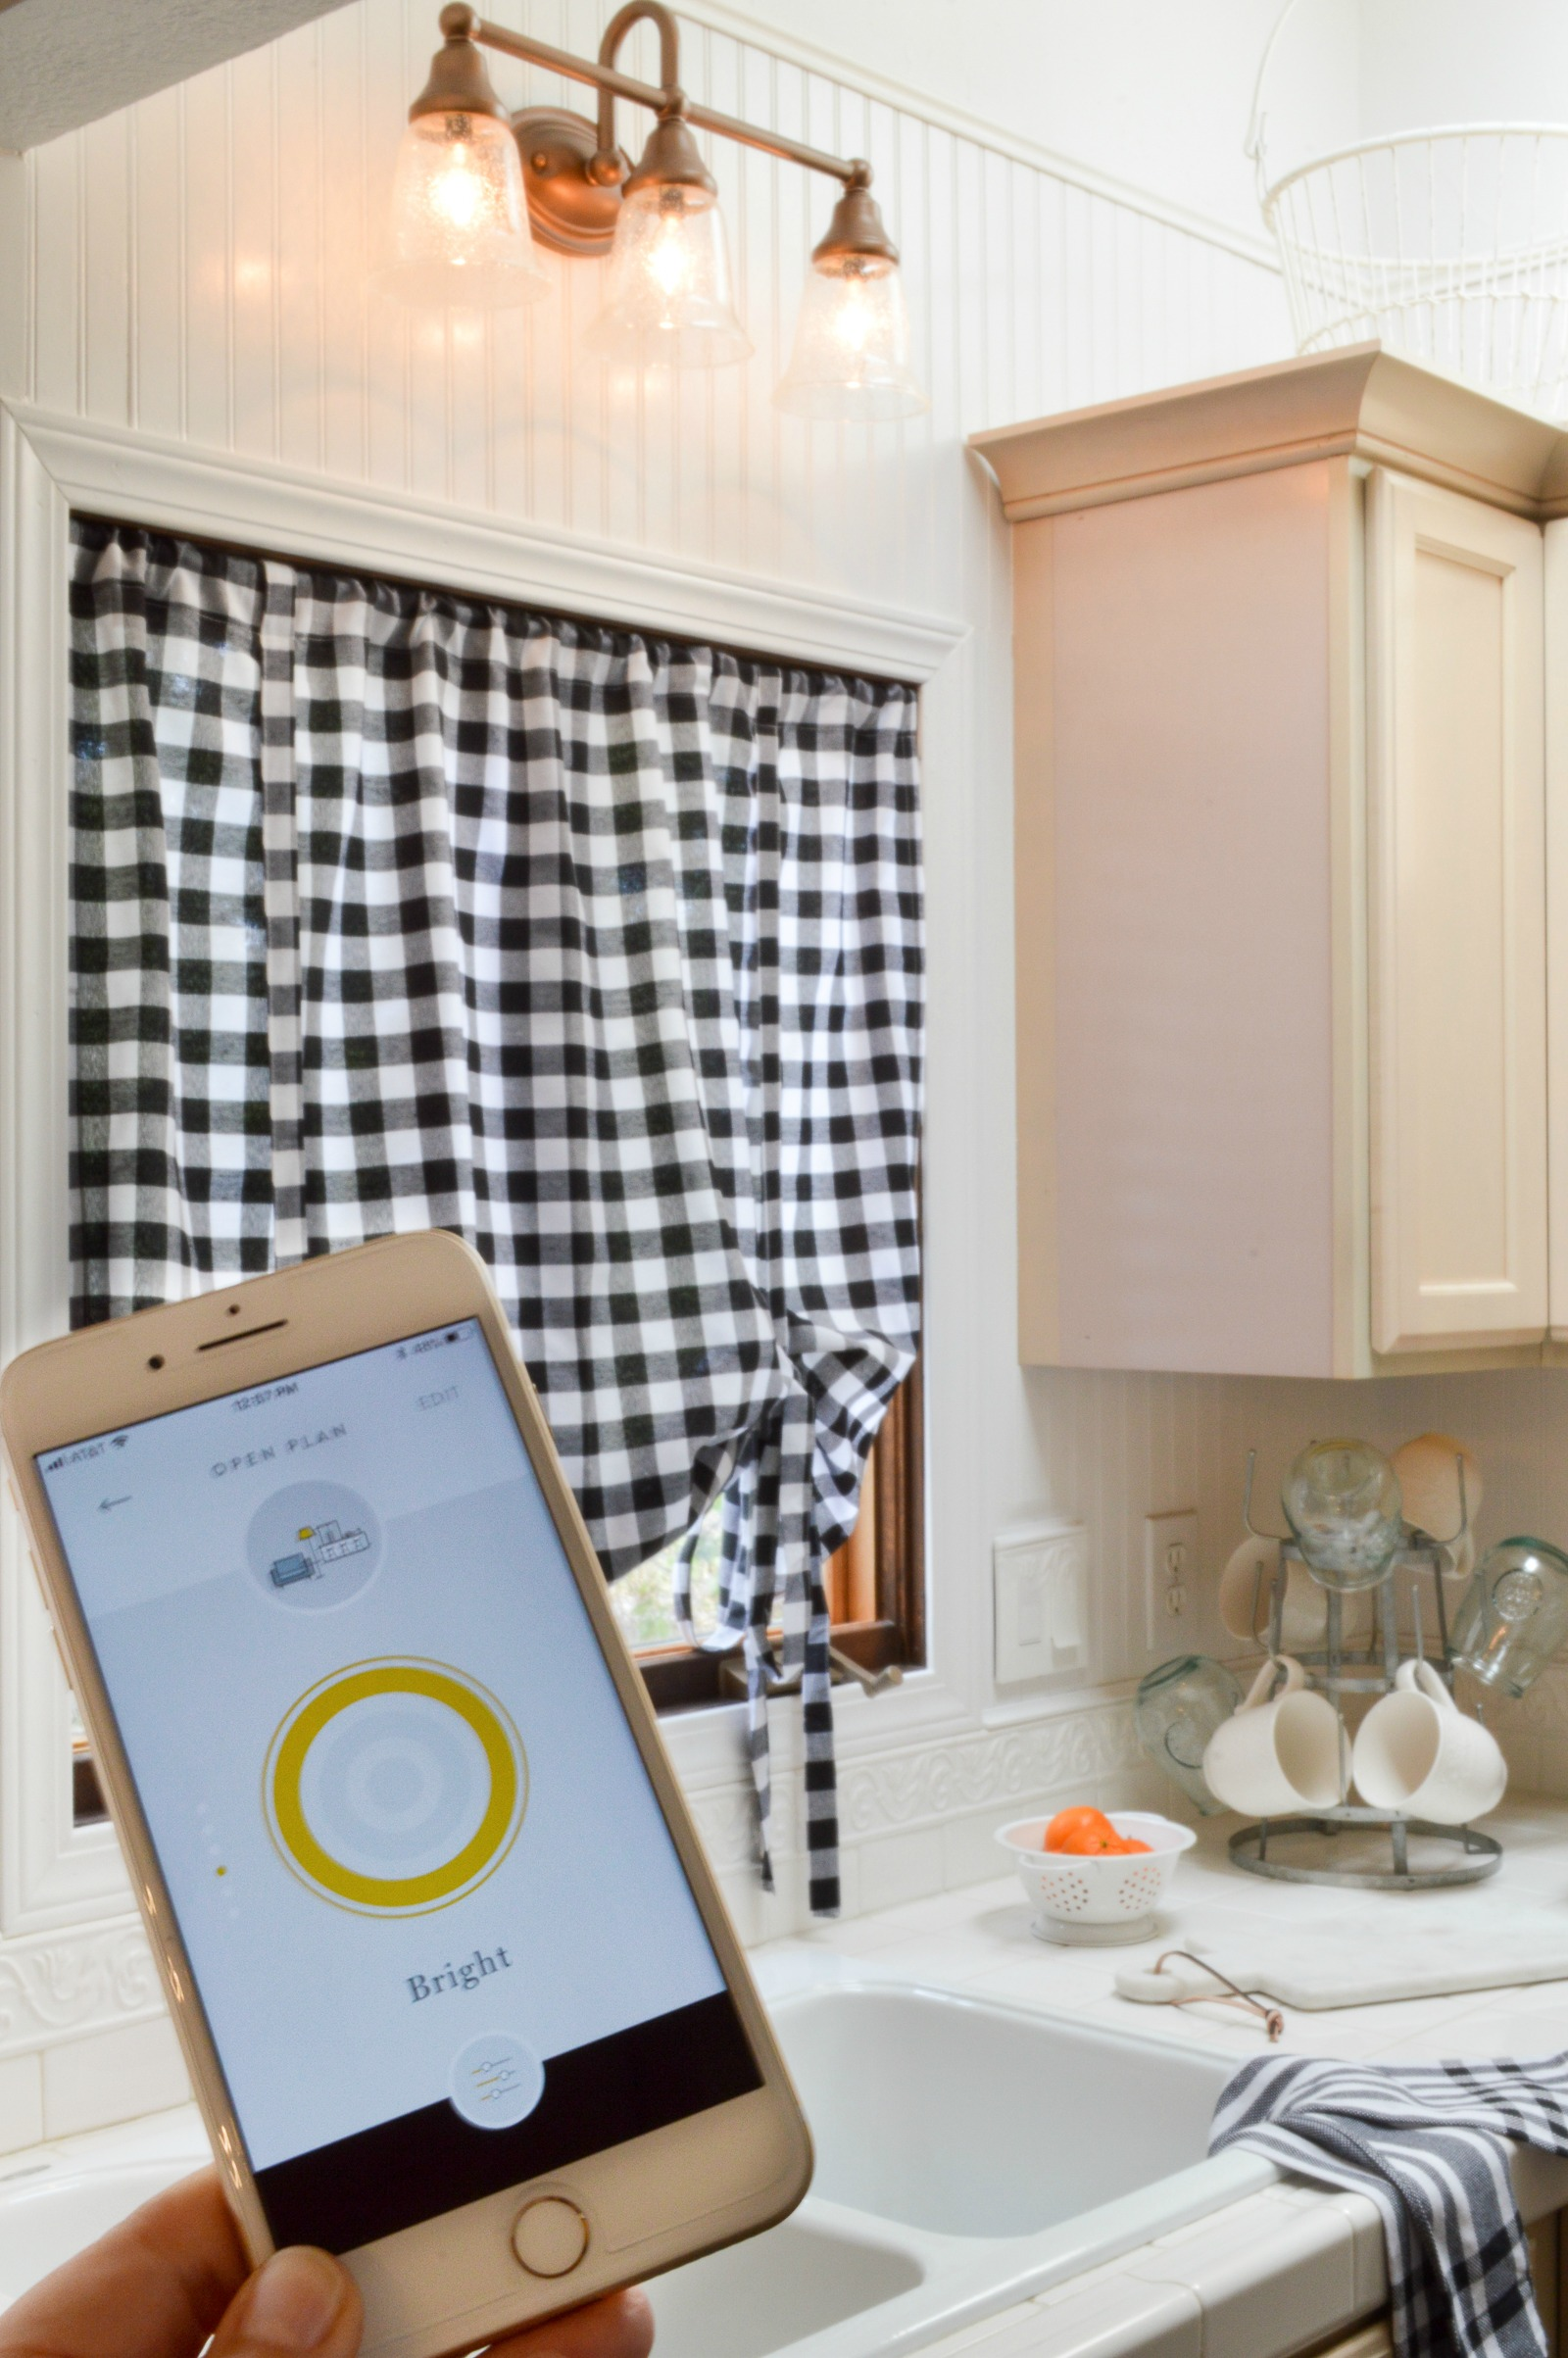 Our Thoughts on the Noon Smart Home Lighting System